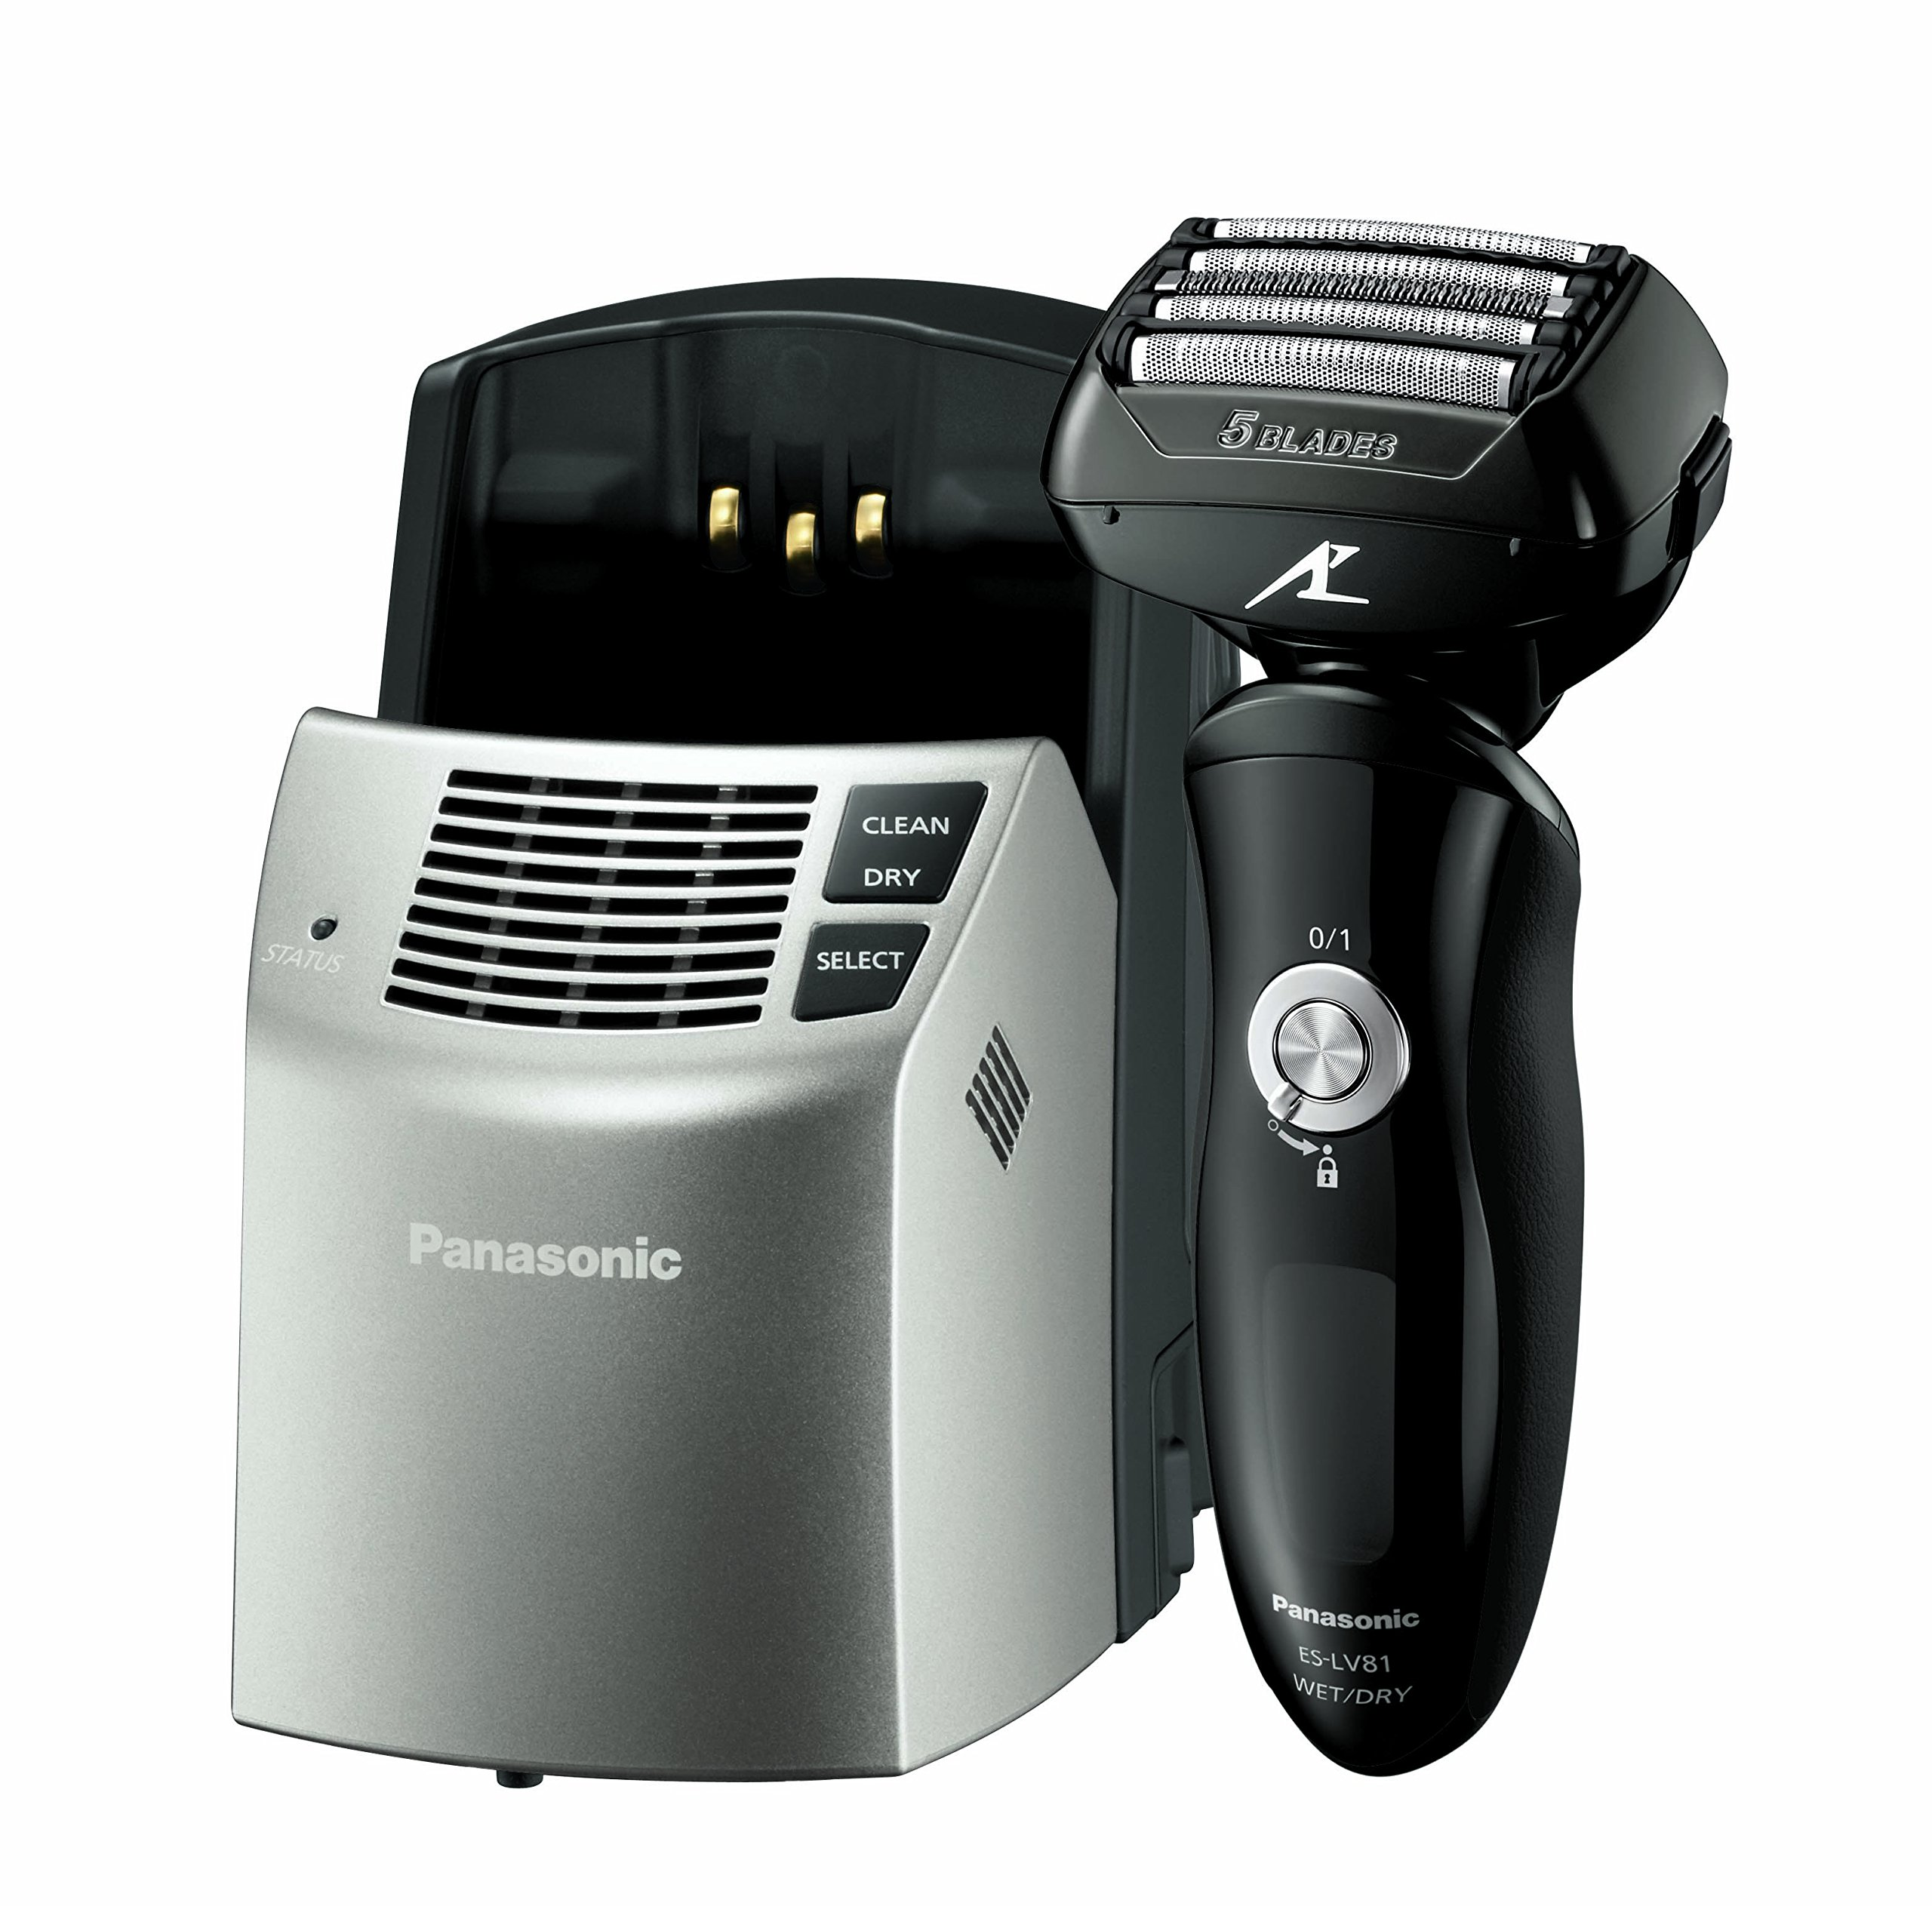 Panasonic ES-LV81-K Arc5 Men's Electric Razor, Wet/Dry with Multi-Flex Pivoting Head, High-Performance Motor, and included Premium Automatic Clean & Charge Station